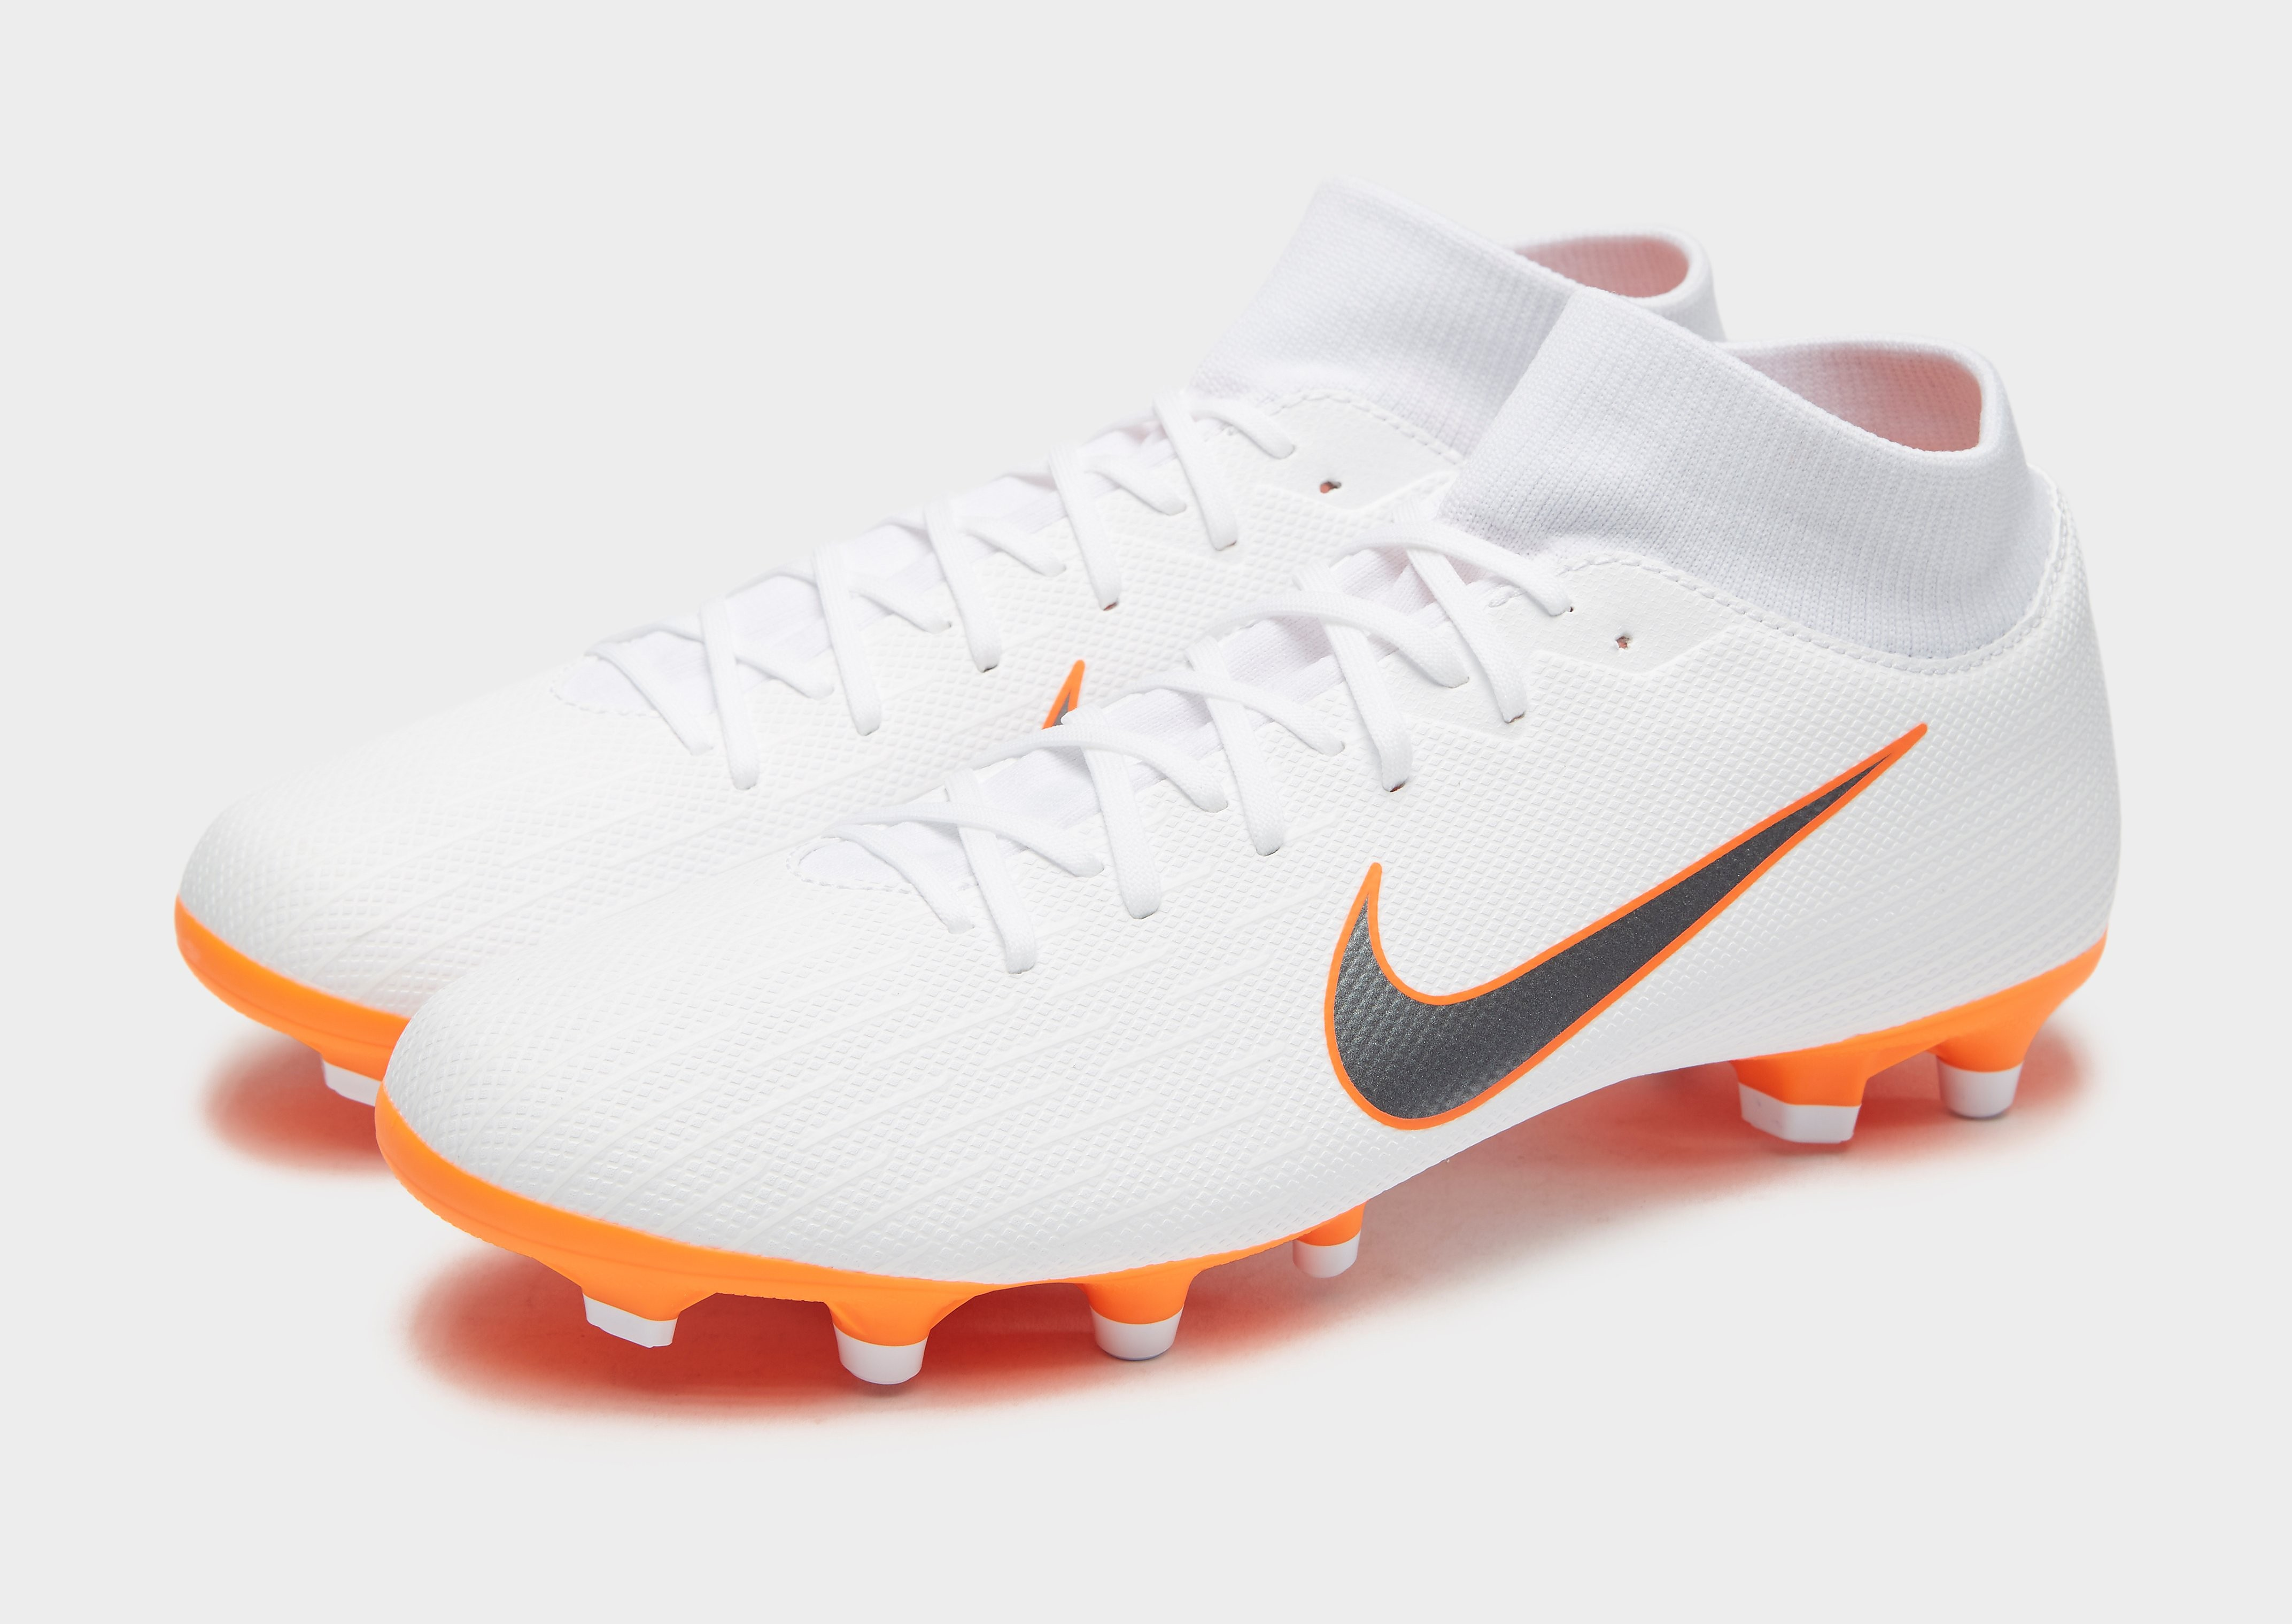 Nike Just Do It Mercurial Superfly Academy MG Homme